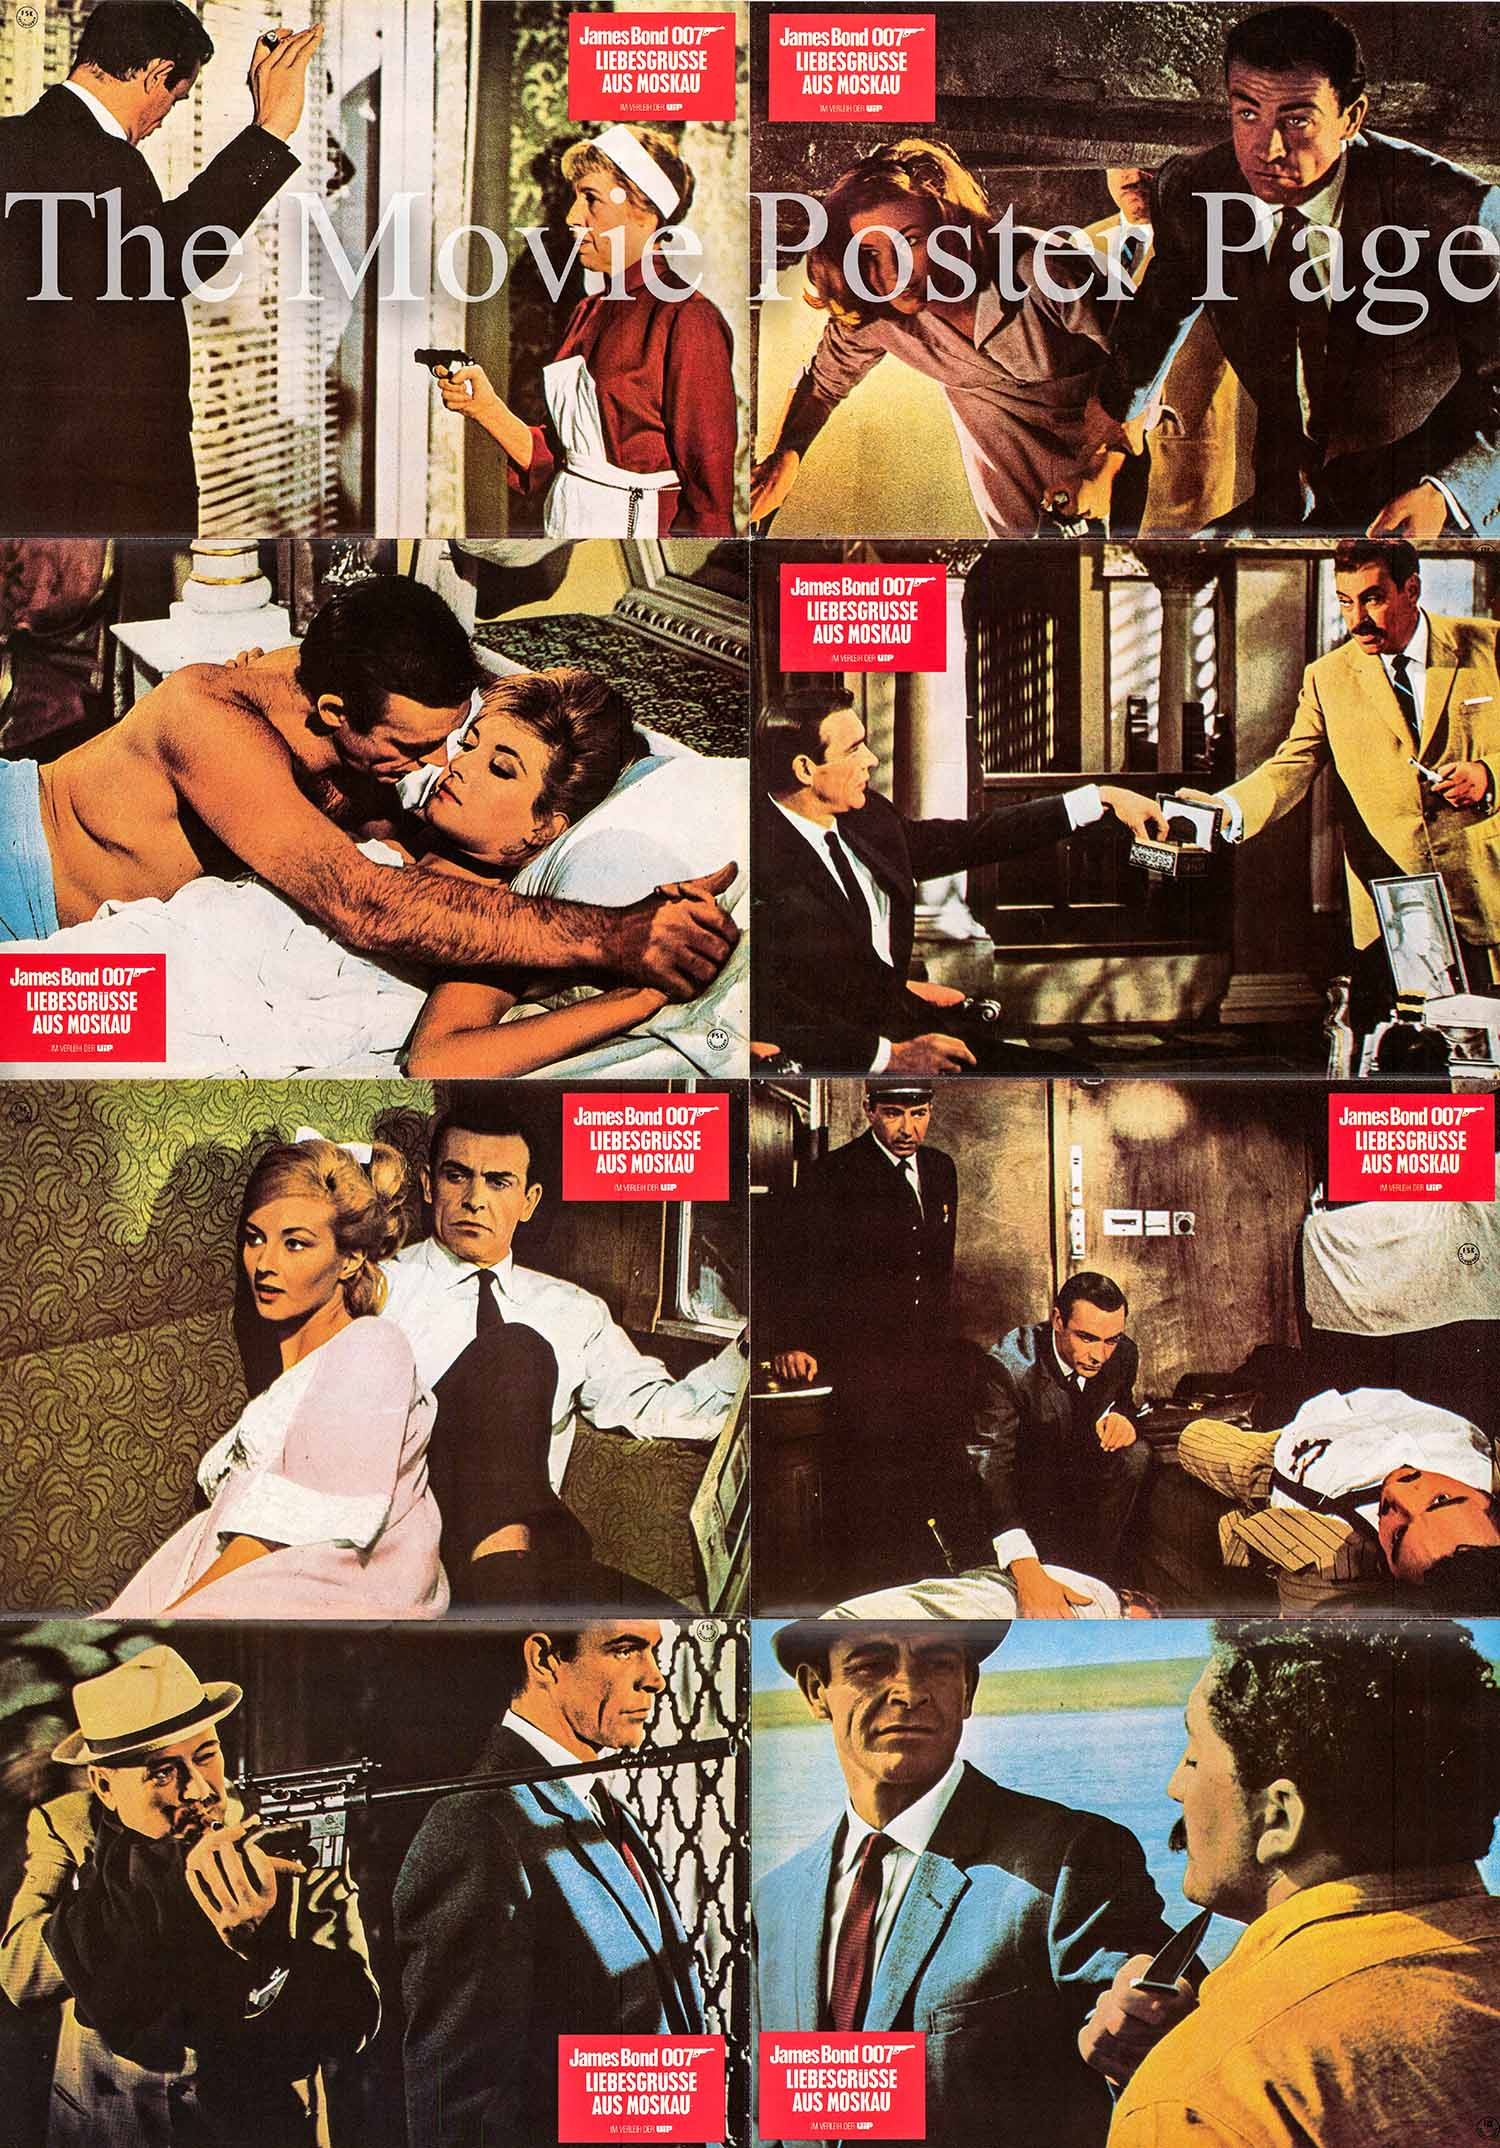 Pictured is a German perforated lobby card sheet printed in the 1980s to promote a rerelease of the 1963 Terence Young film From Russia with Love starring Sean Connery as James Bond.